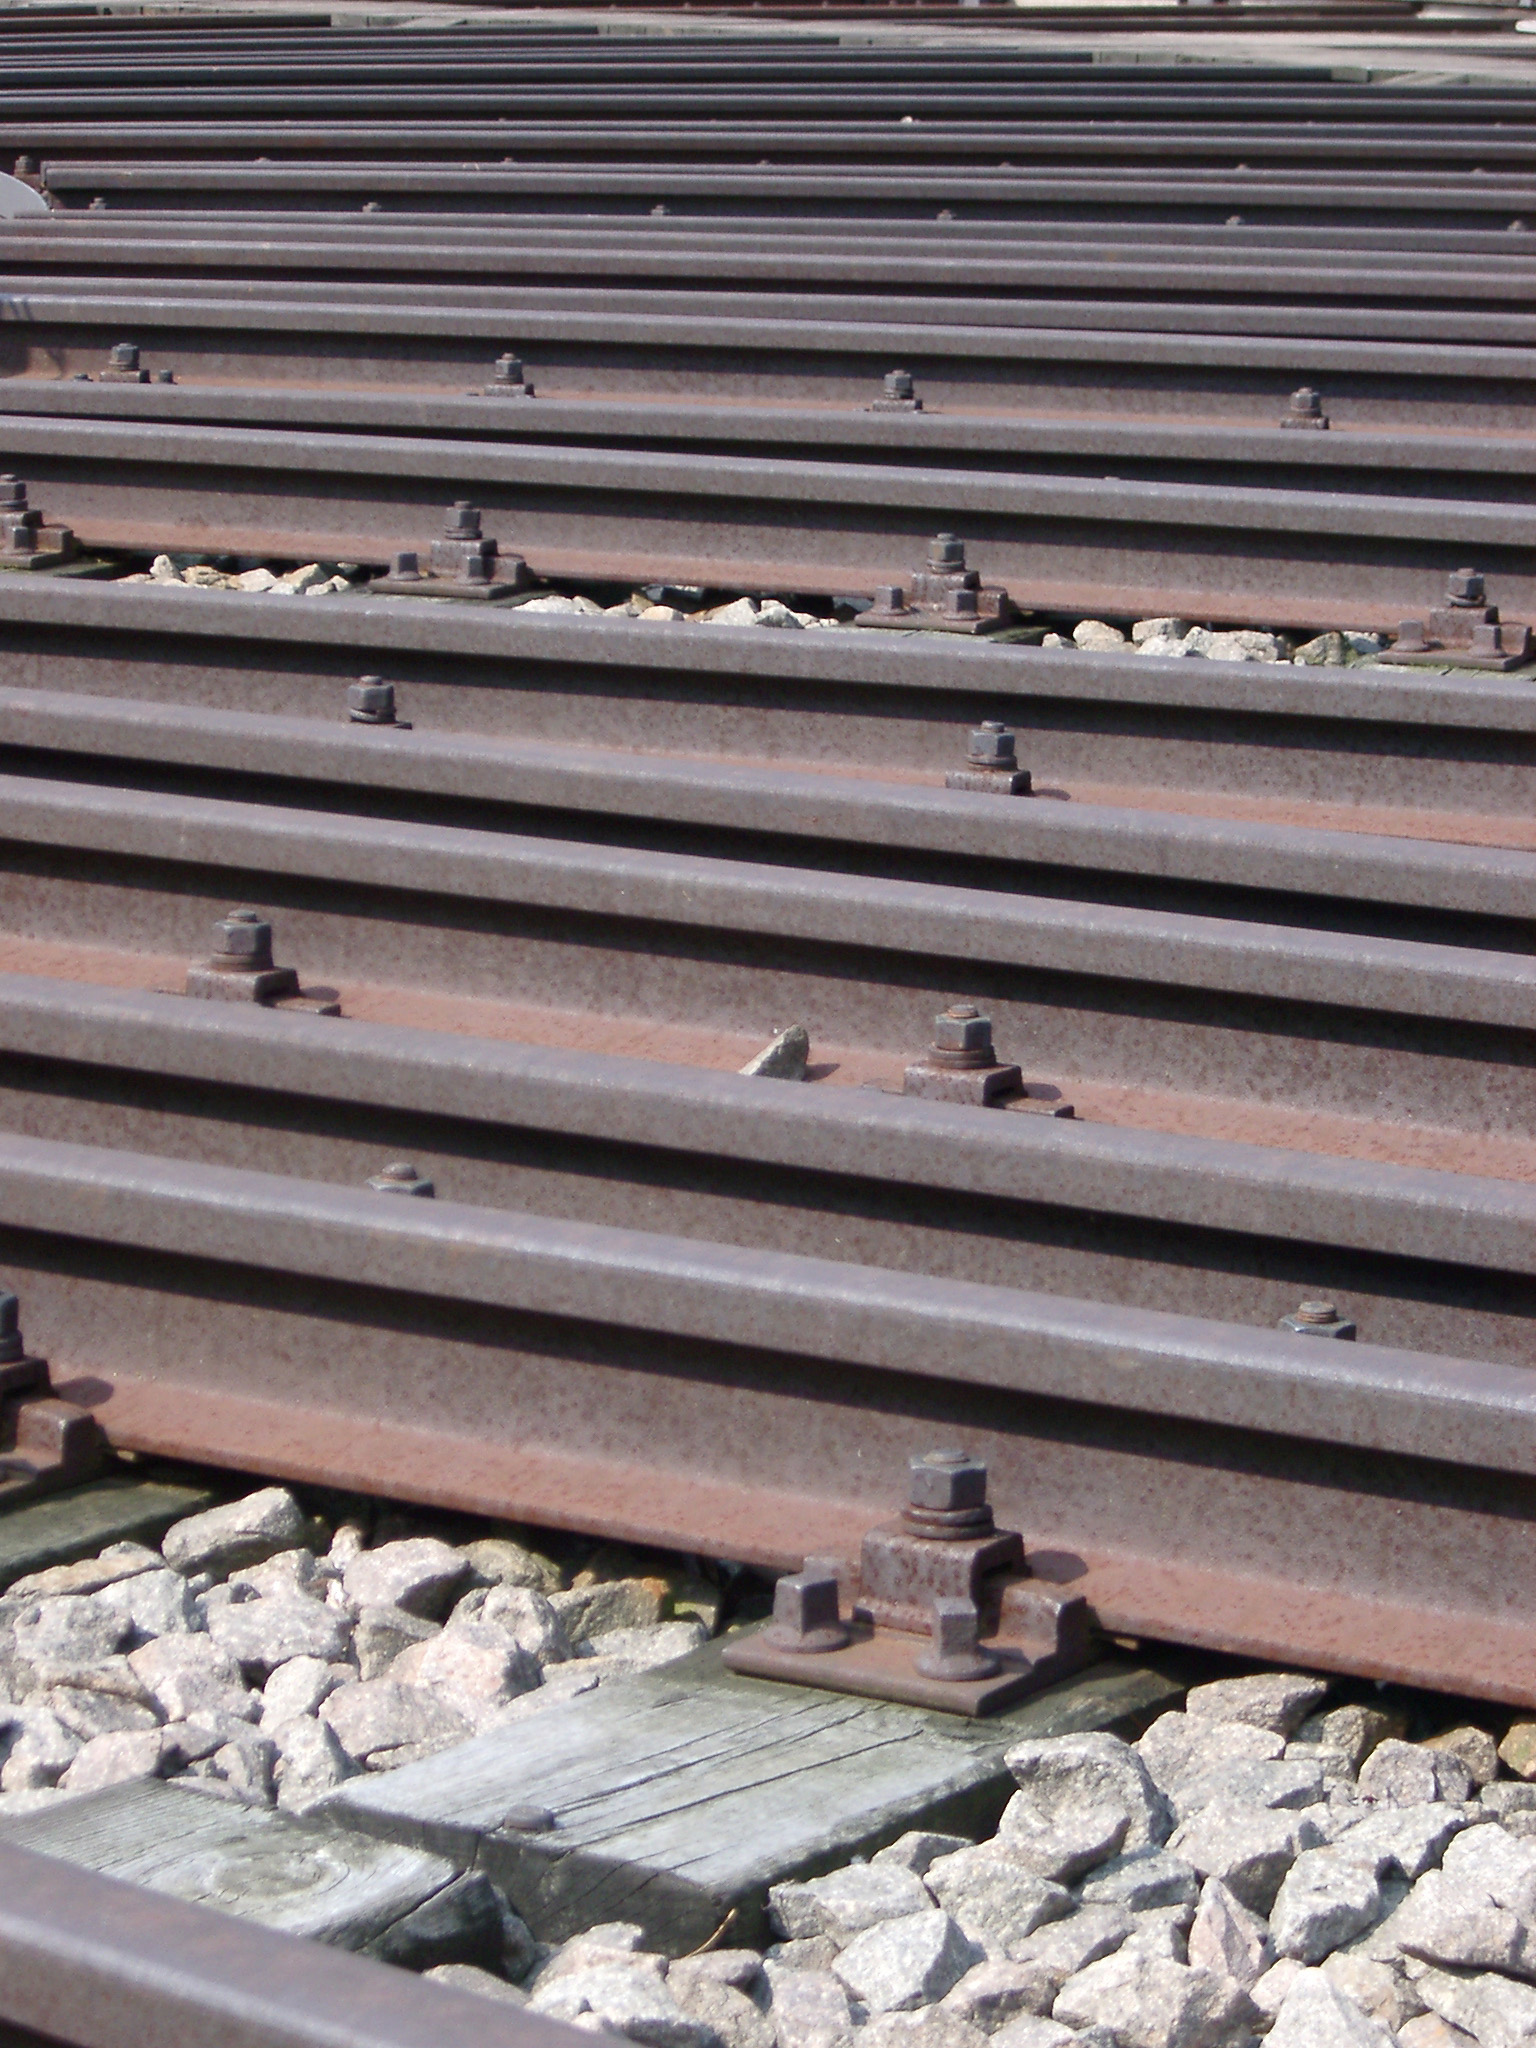 Close Up of Many Parallel Rail Lines in Rail Yard